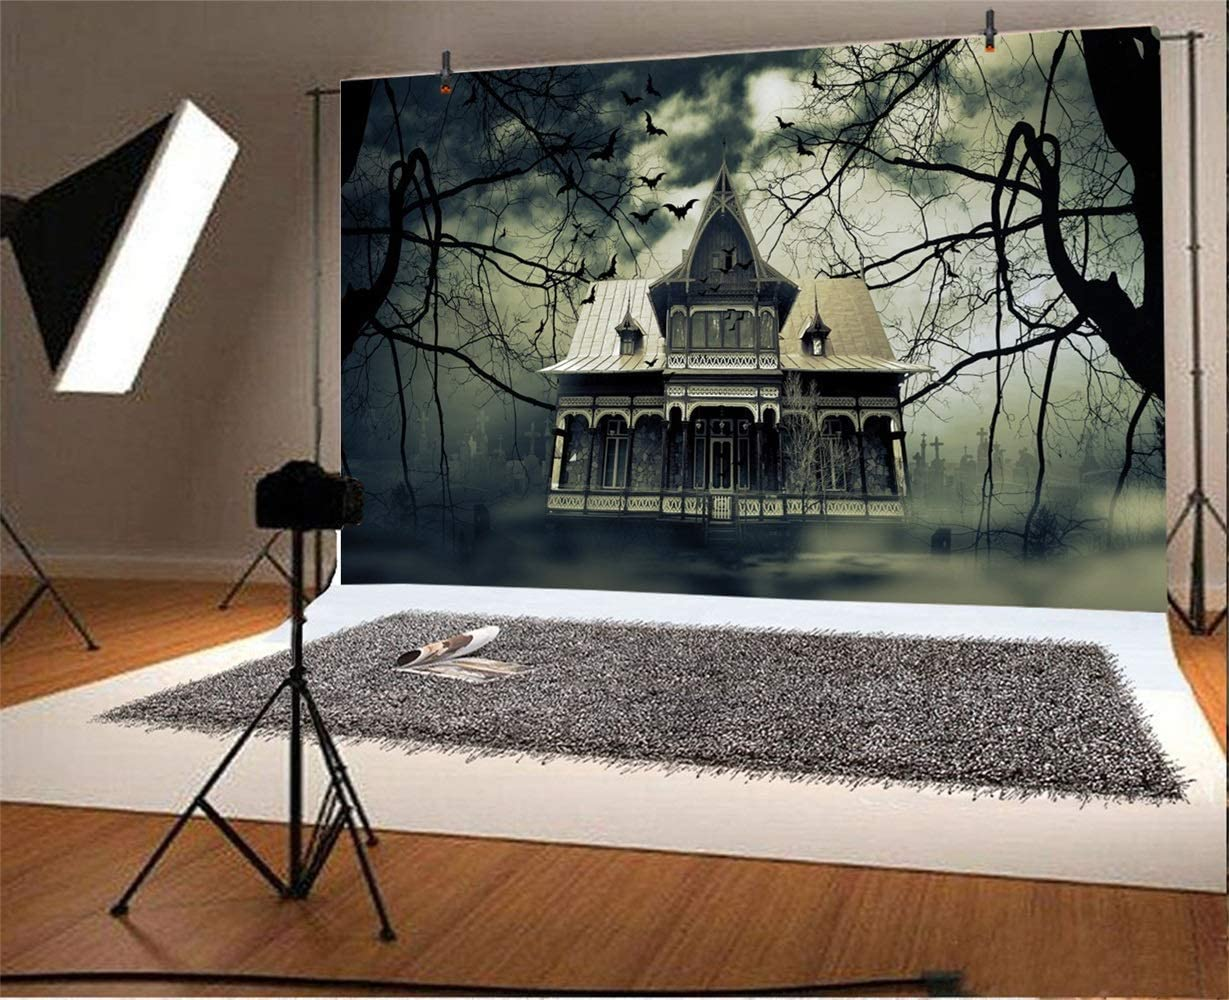 10x6.5ft Halloween Theme Backdrop Polyester Foggy Ghastly Cemetery Deserted Haunted Villa Gloomy Cloudy Sky Decayed Trees Photo Backgroud Child Baby Portrait Shoot Trick Or Treat Party Banner